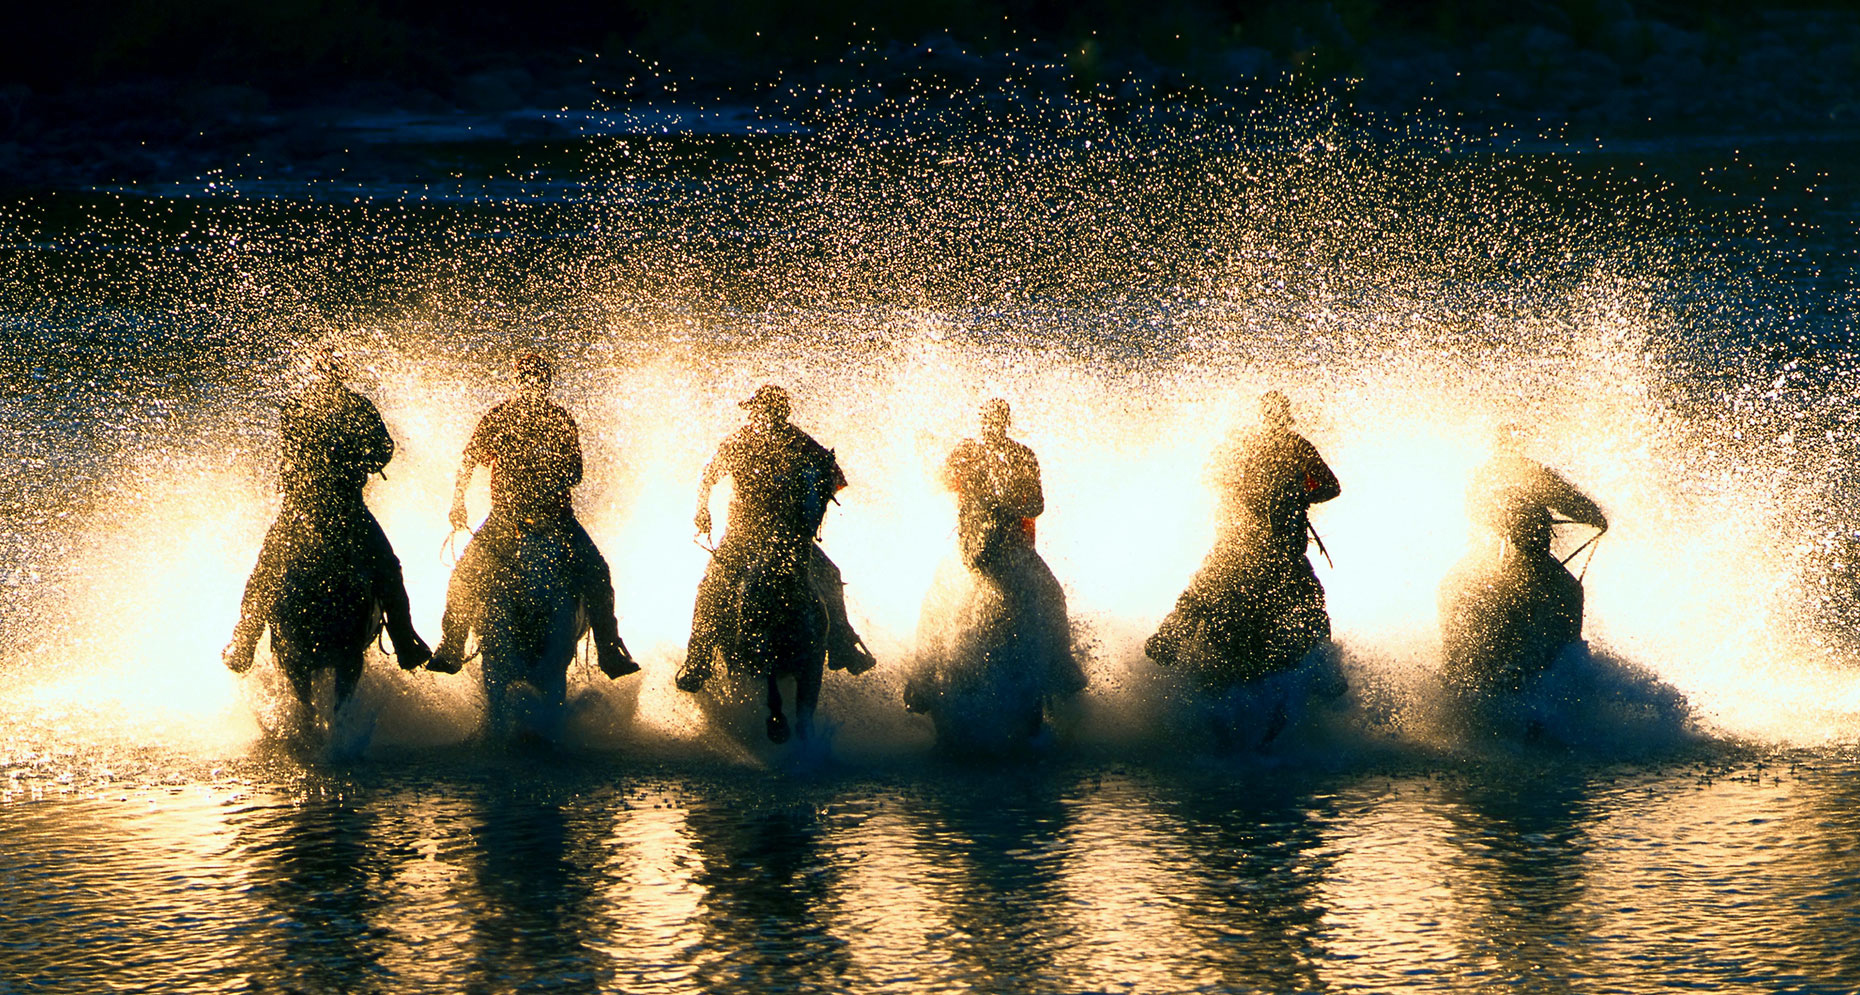 SIX_HORSES_IN_RIVER.www